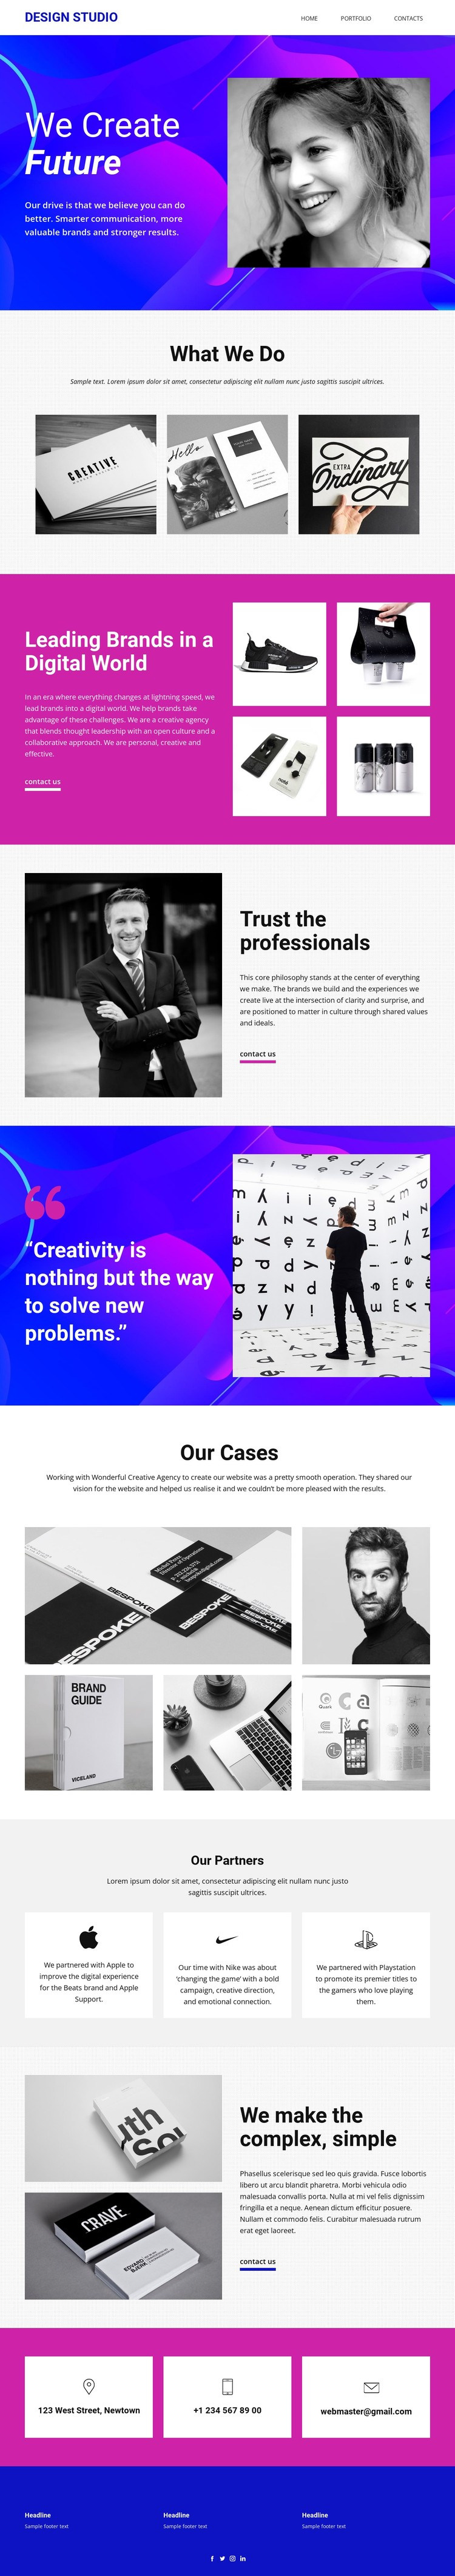 We develop the brand's core CSS Template